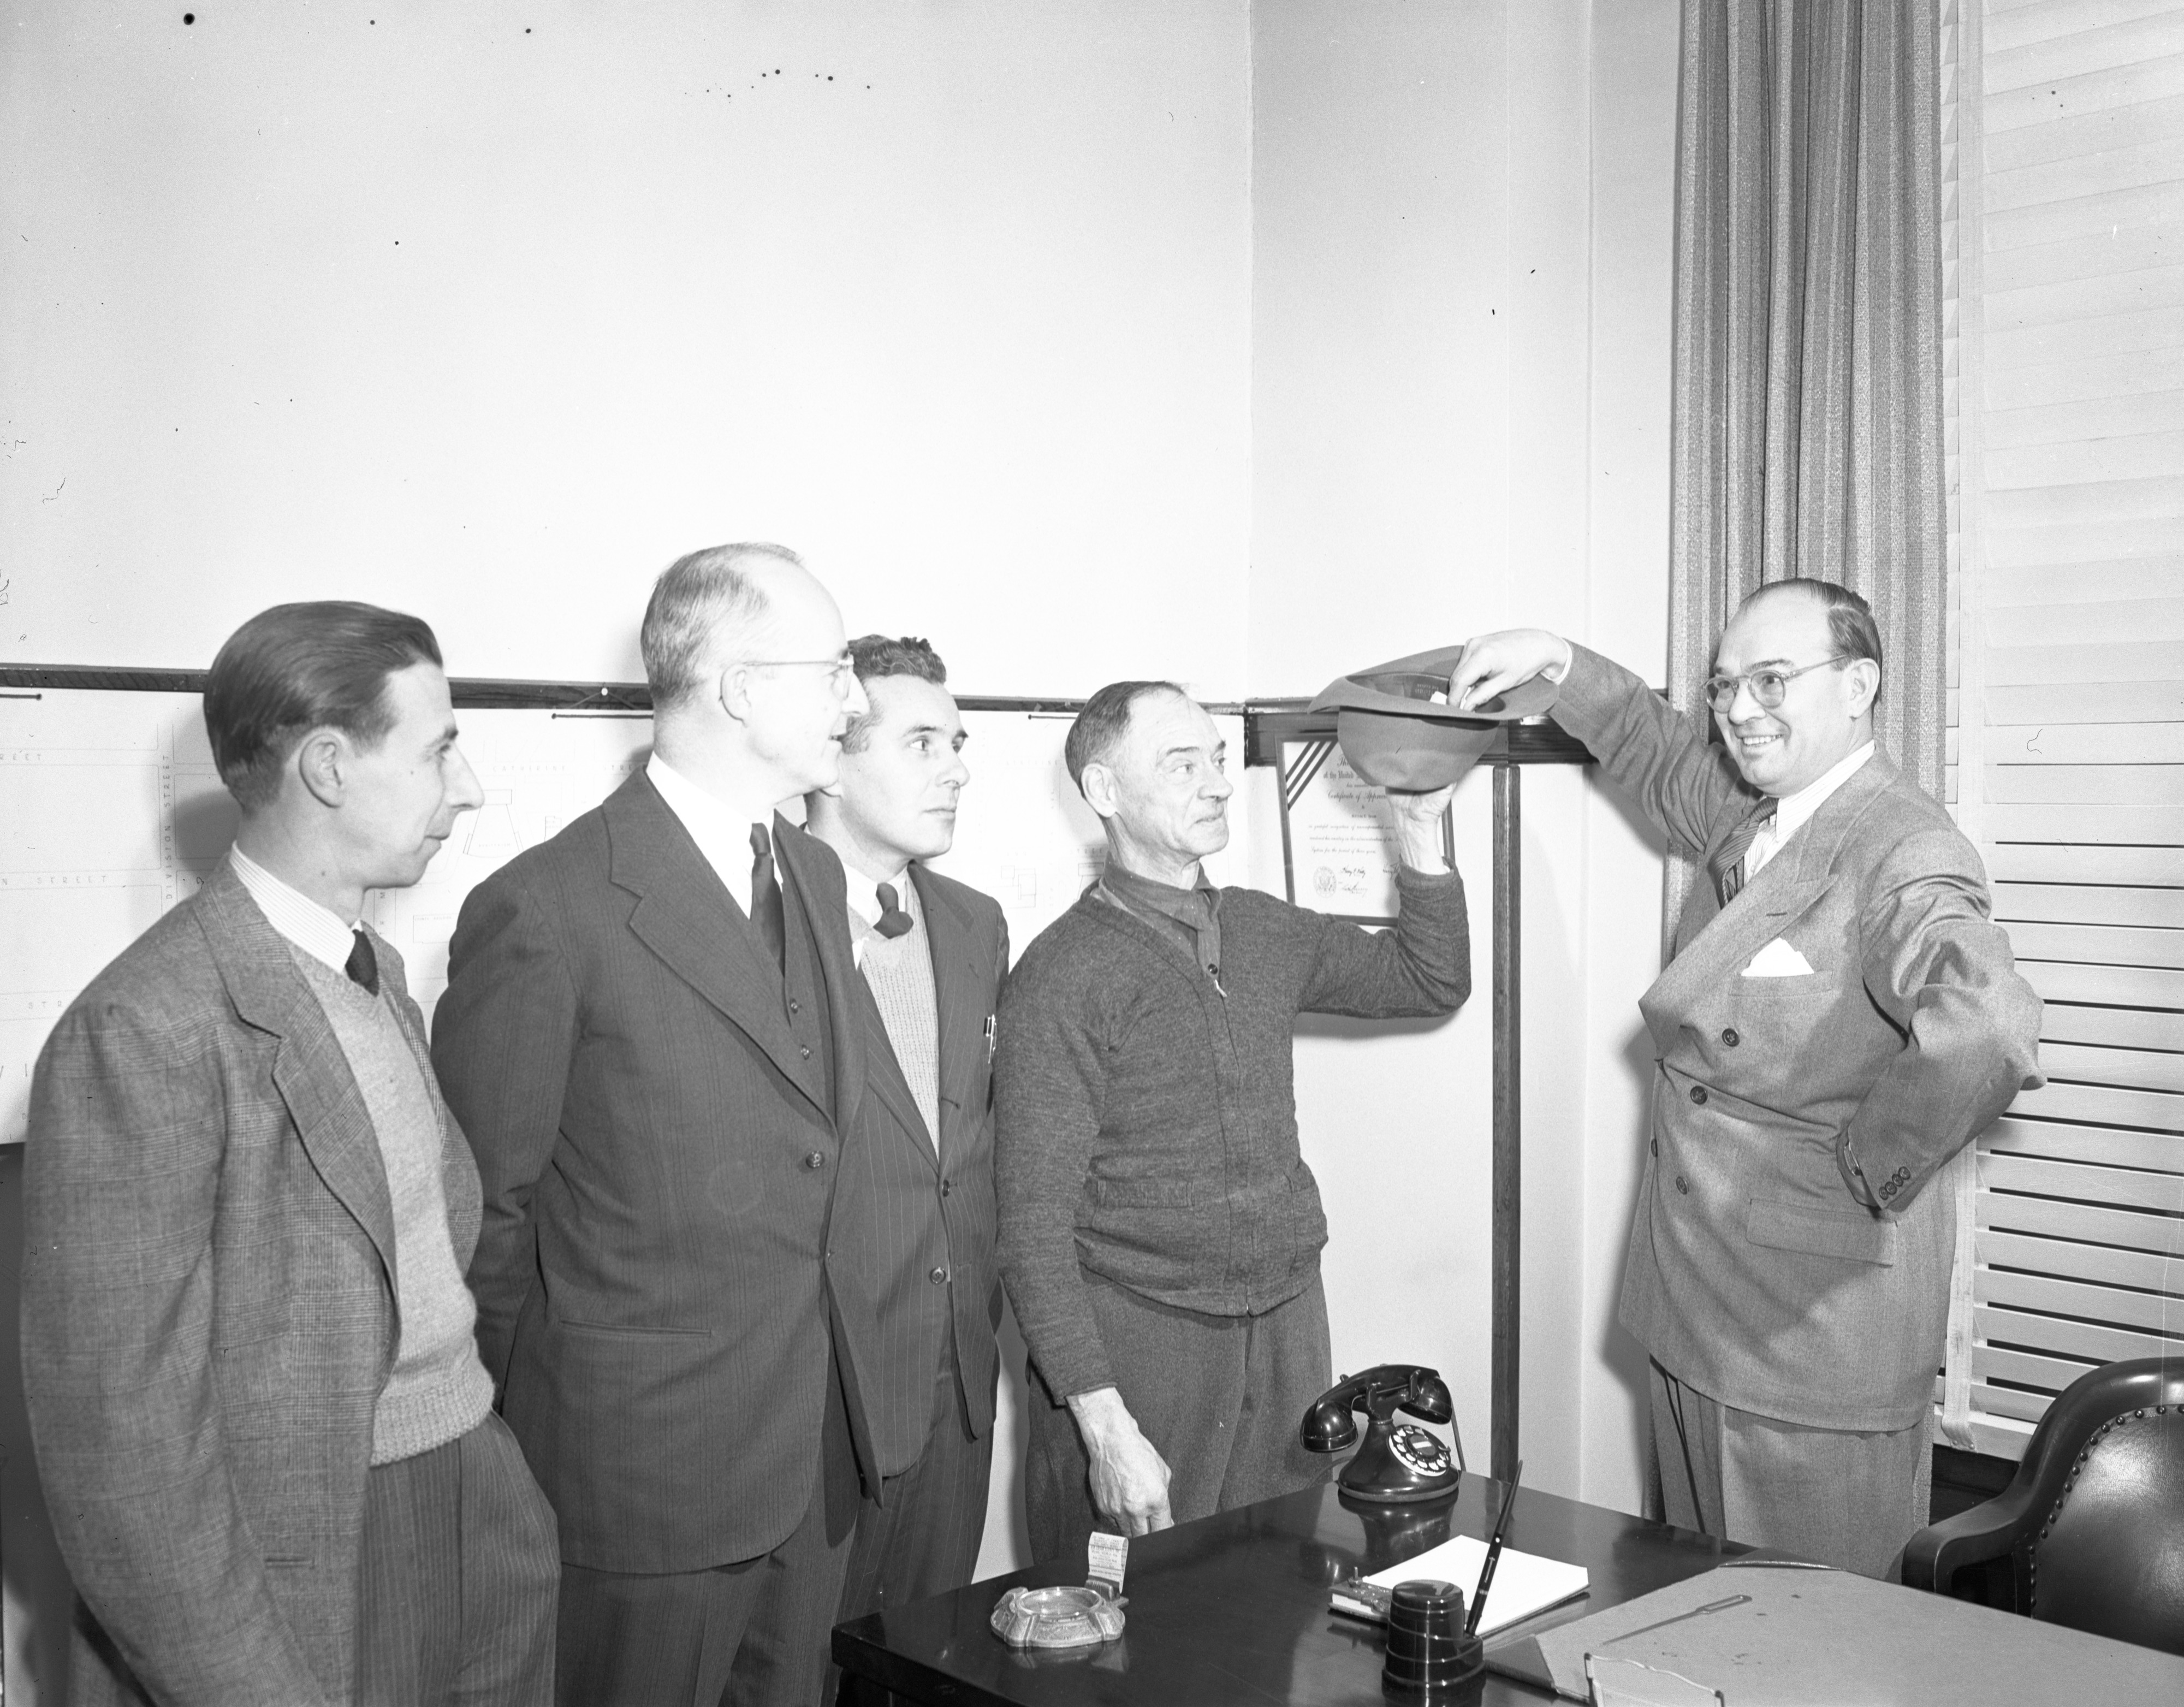 Mayor Brown Selects Purchaser Of Home Built By High School Students, December 1946 image